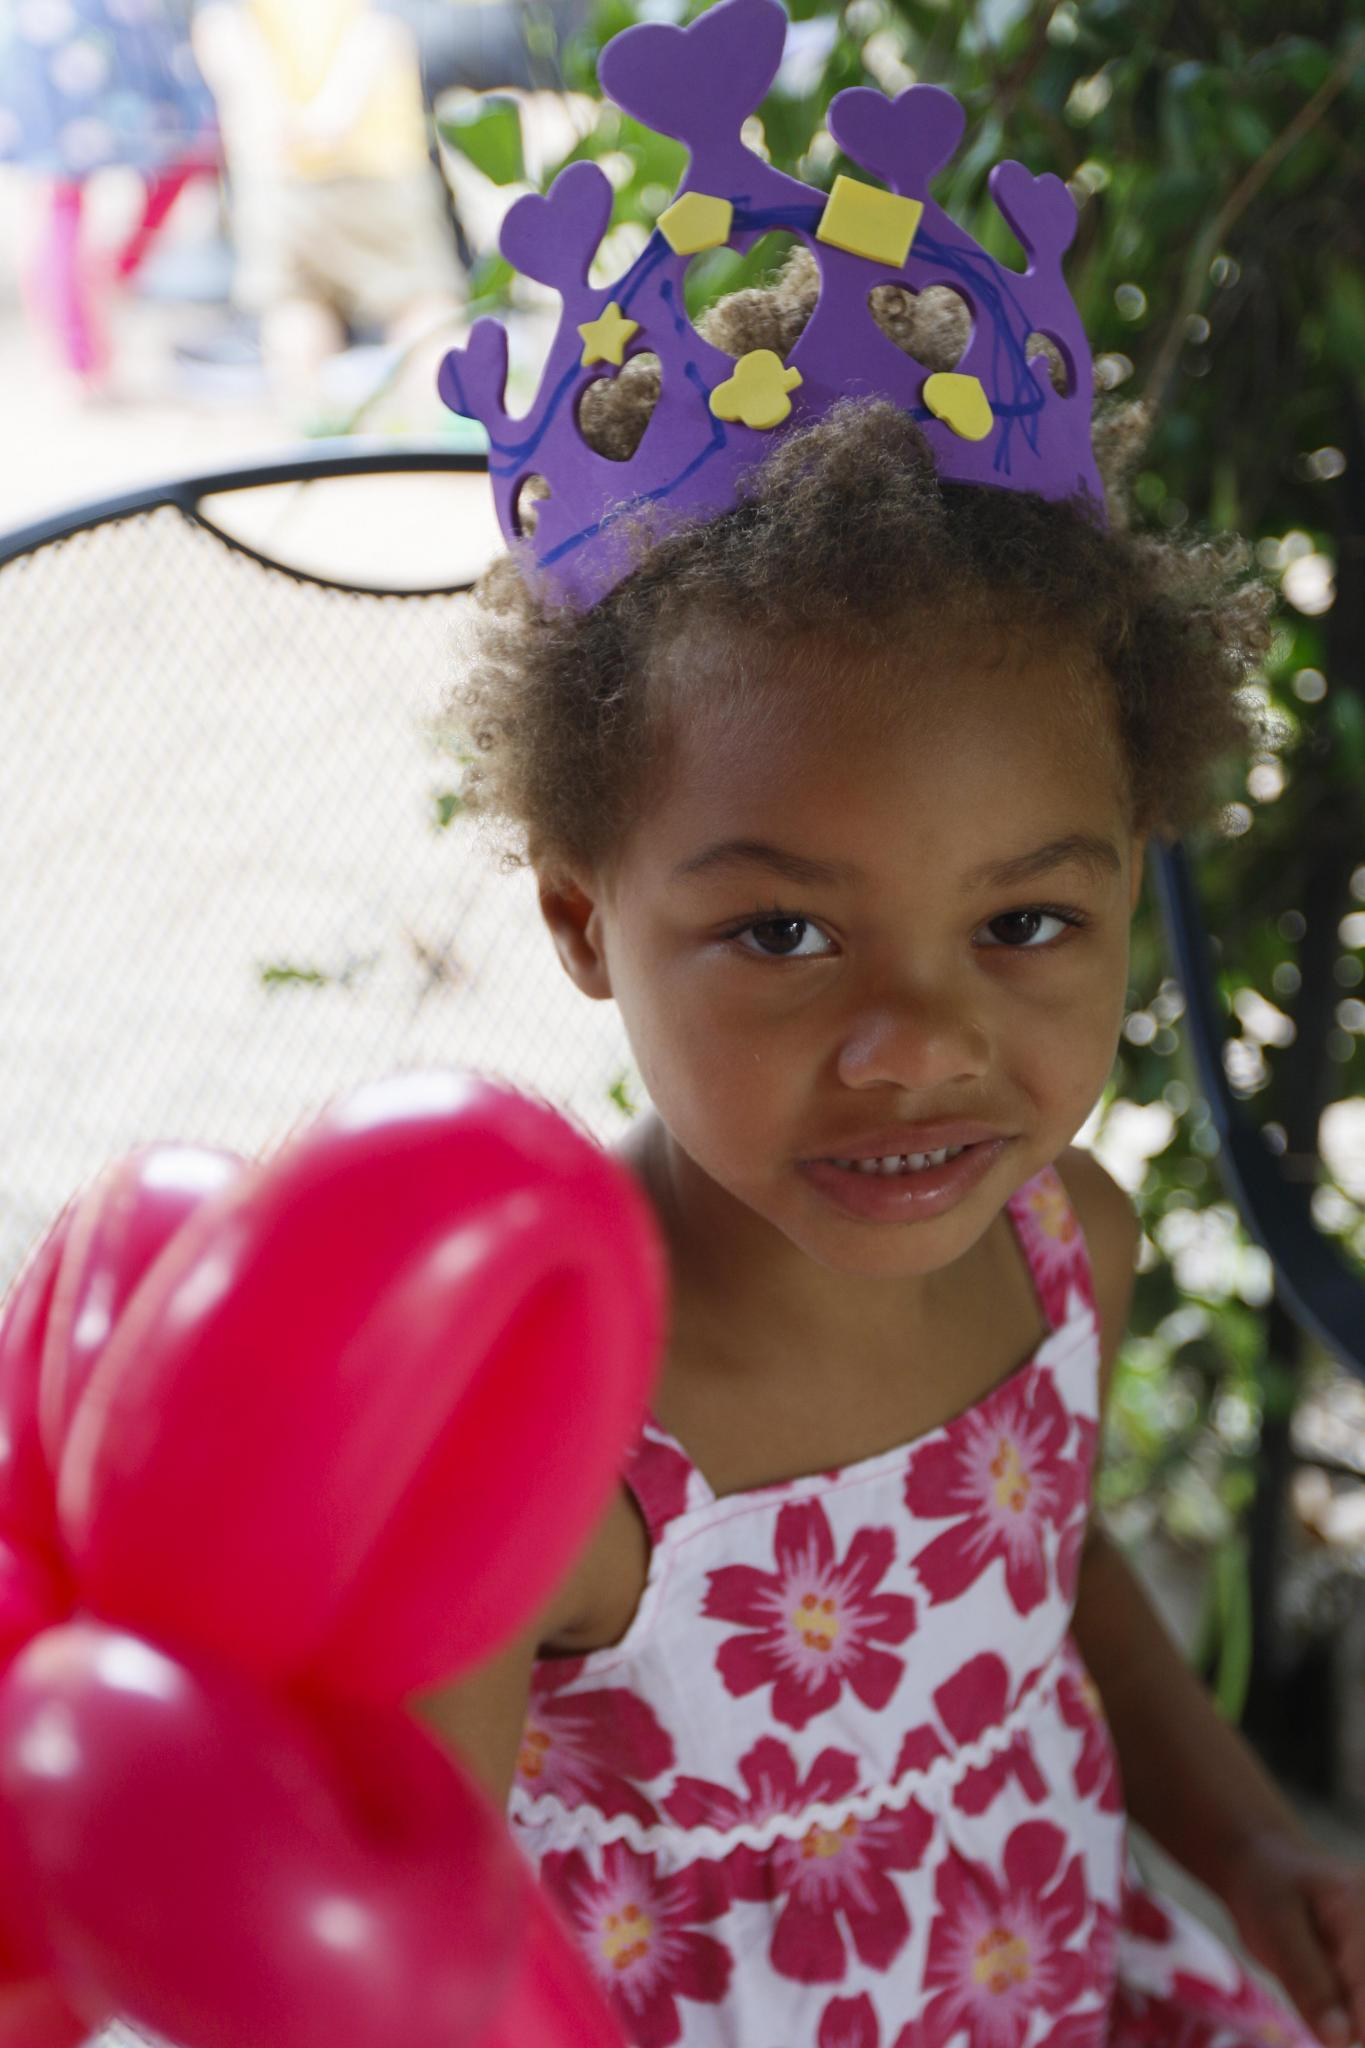 Malia Racine-Belleau, got the chance to make crowns and get balloon animals.